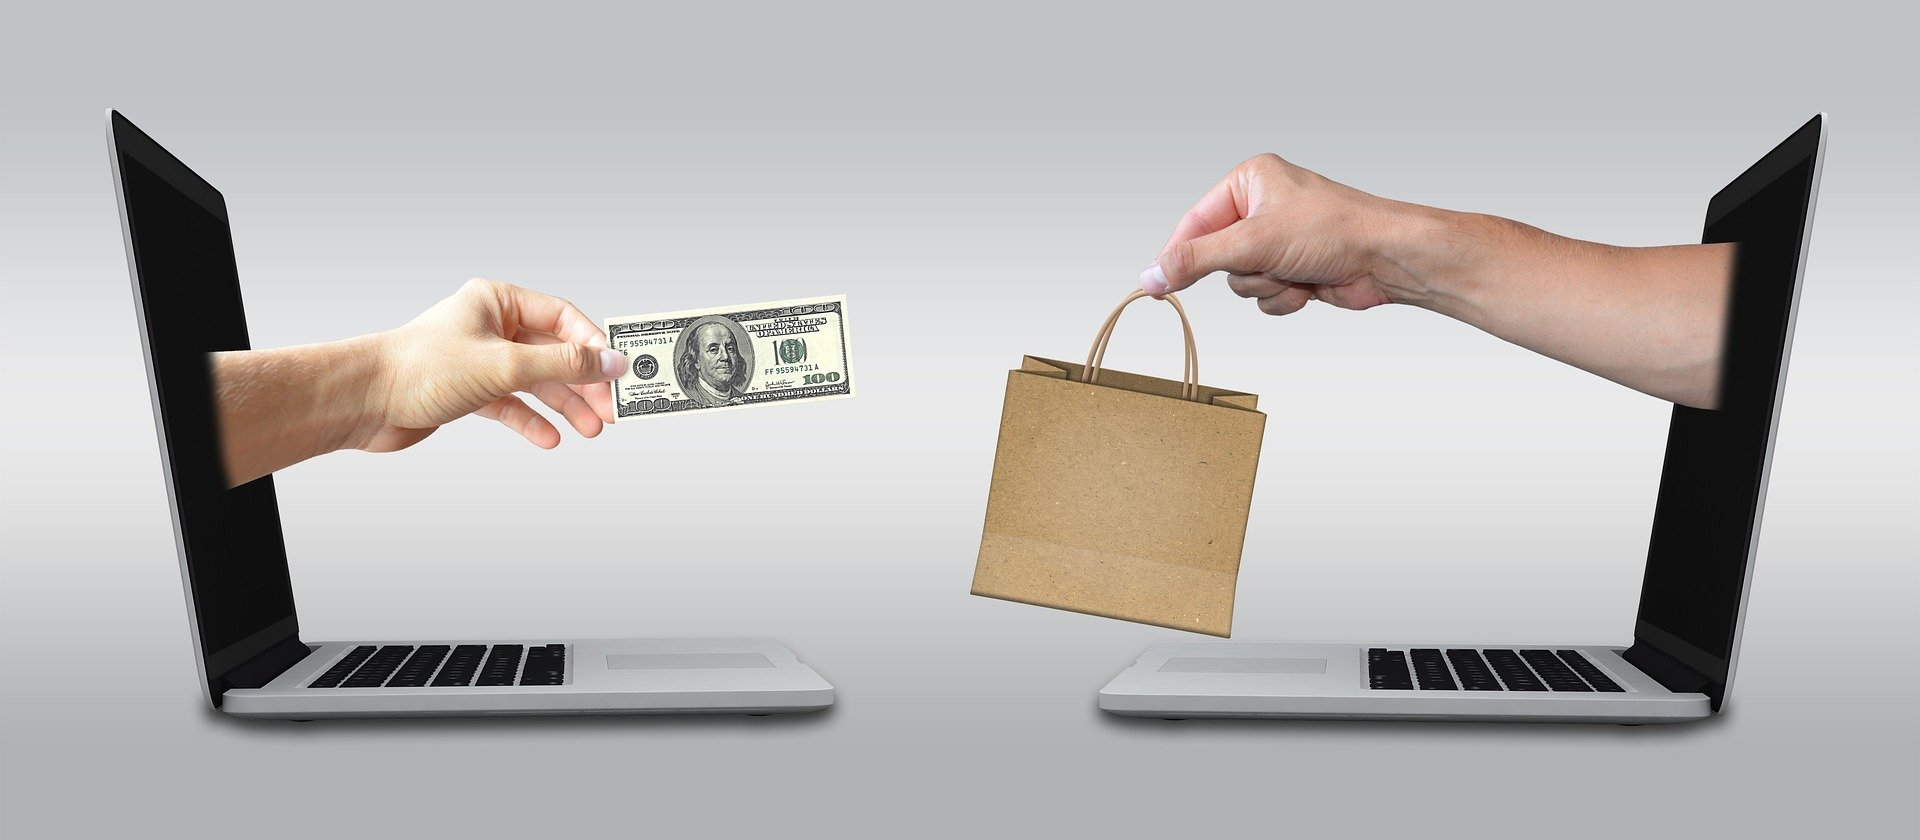 5 Funding Opportunities for E-Commerce Startups You Should Know About